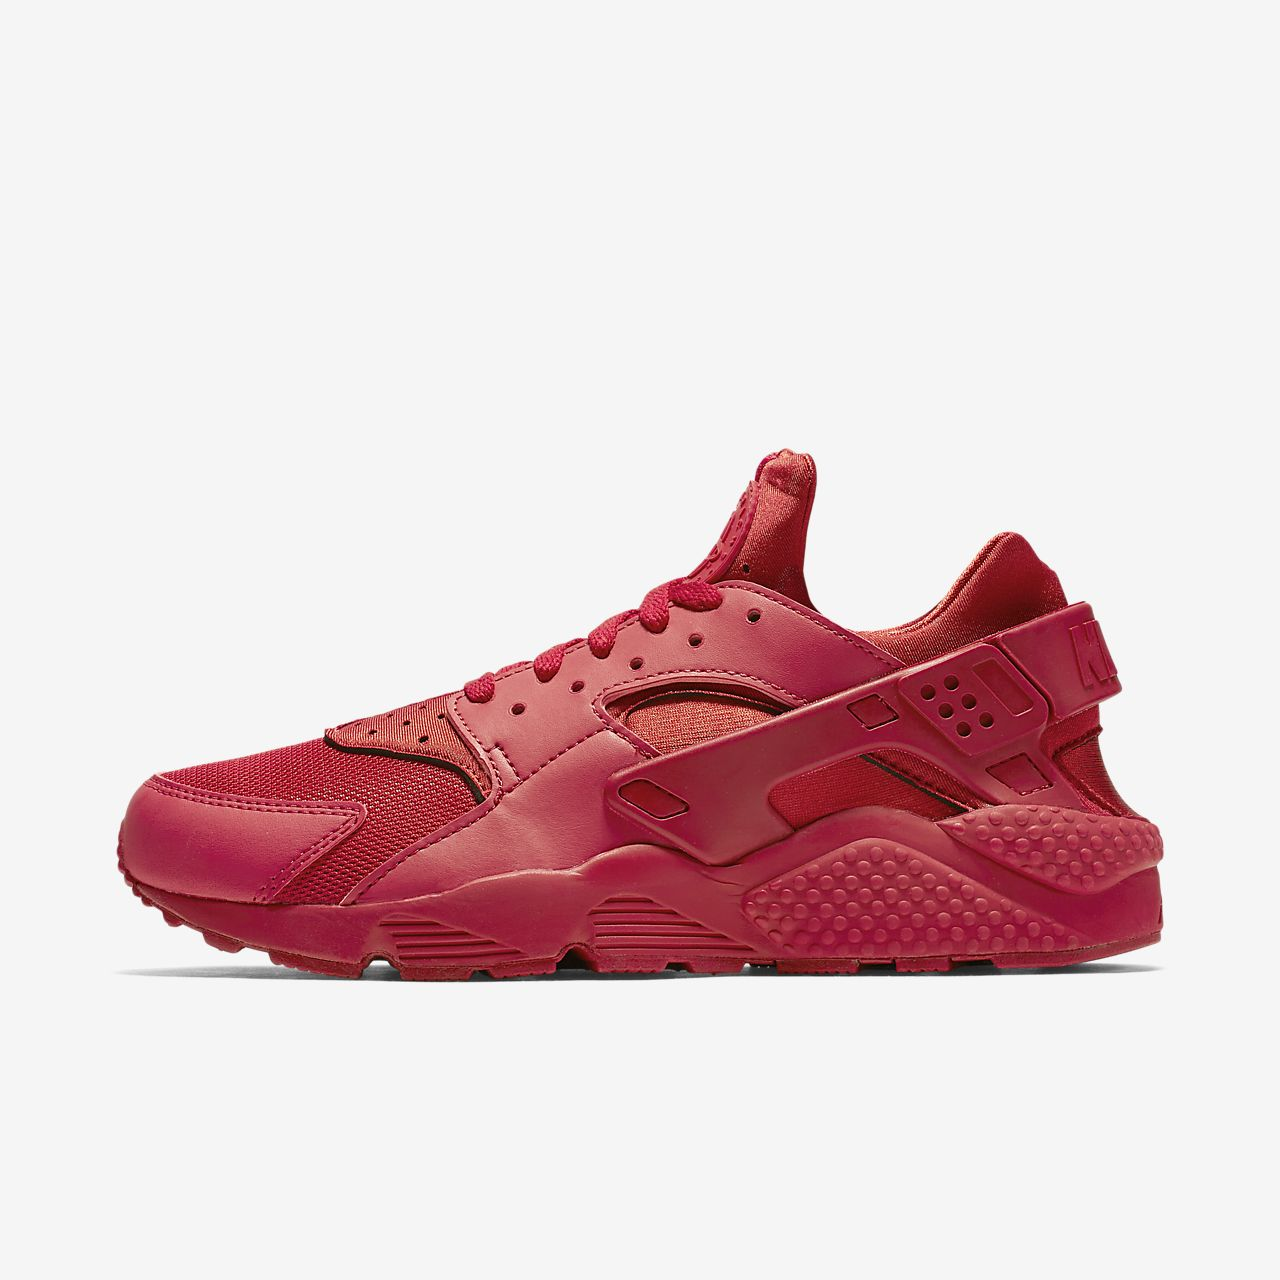 on sale dc7b3 bf3cc Low Resolution Nike Air Huarache Men s Shoe Nike Air Huarache Men s Shoe